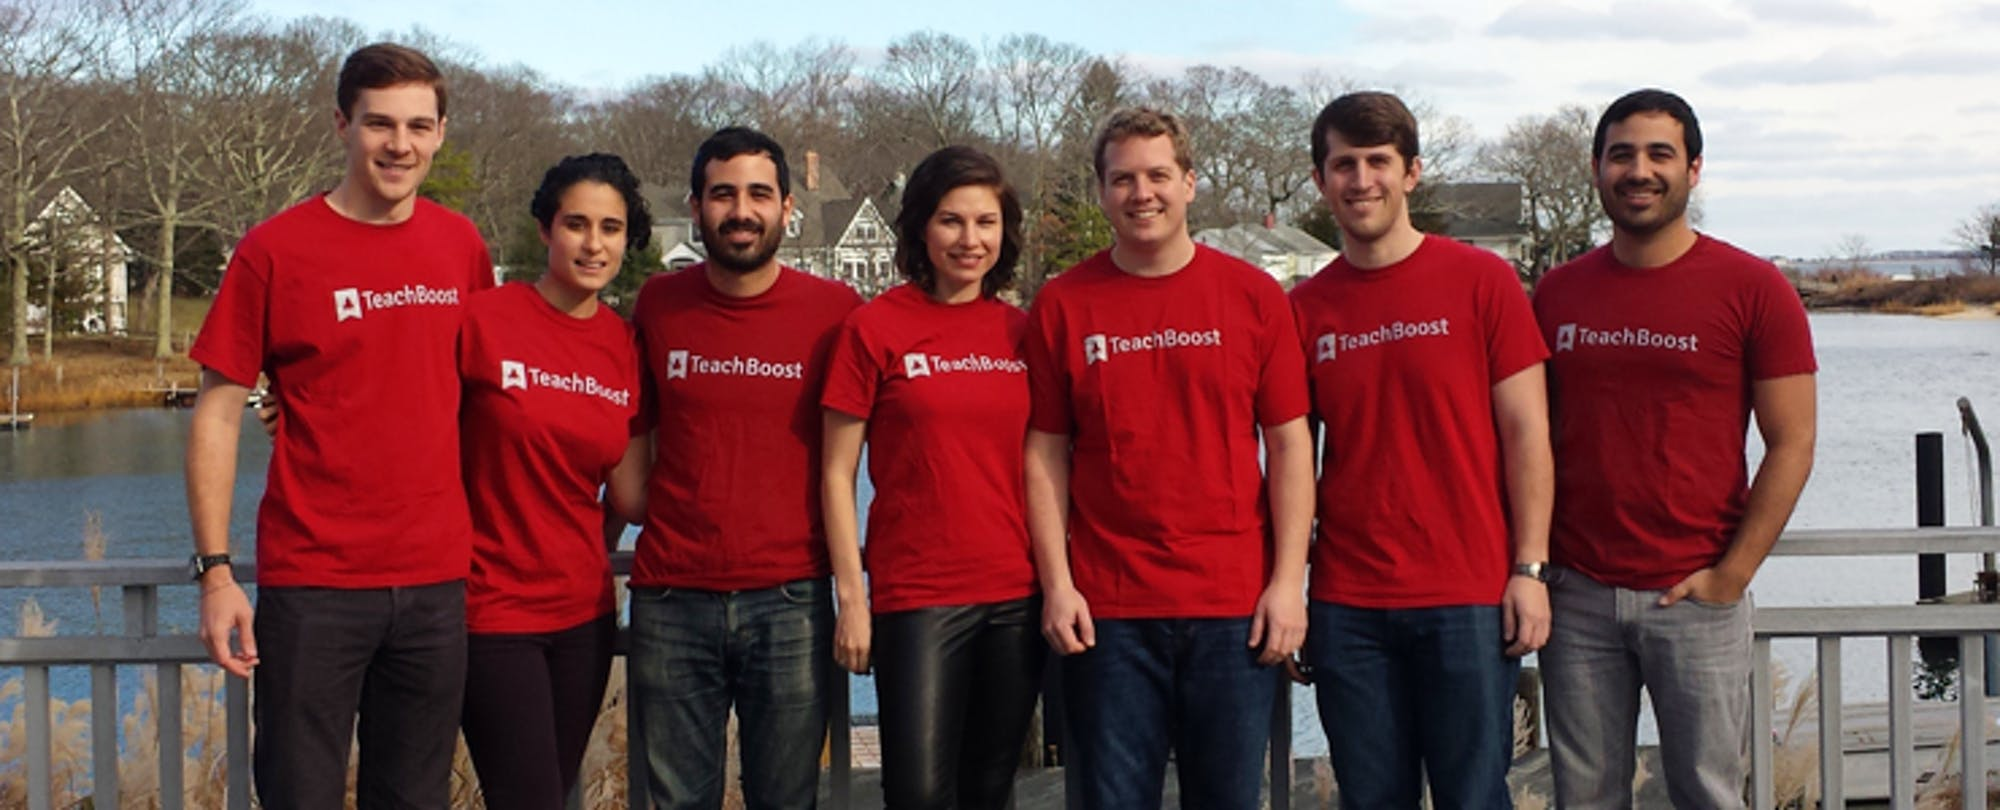 No VC, No Problem: How TeachBoost Built a Sustainable Business